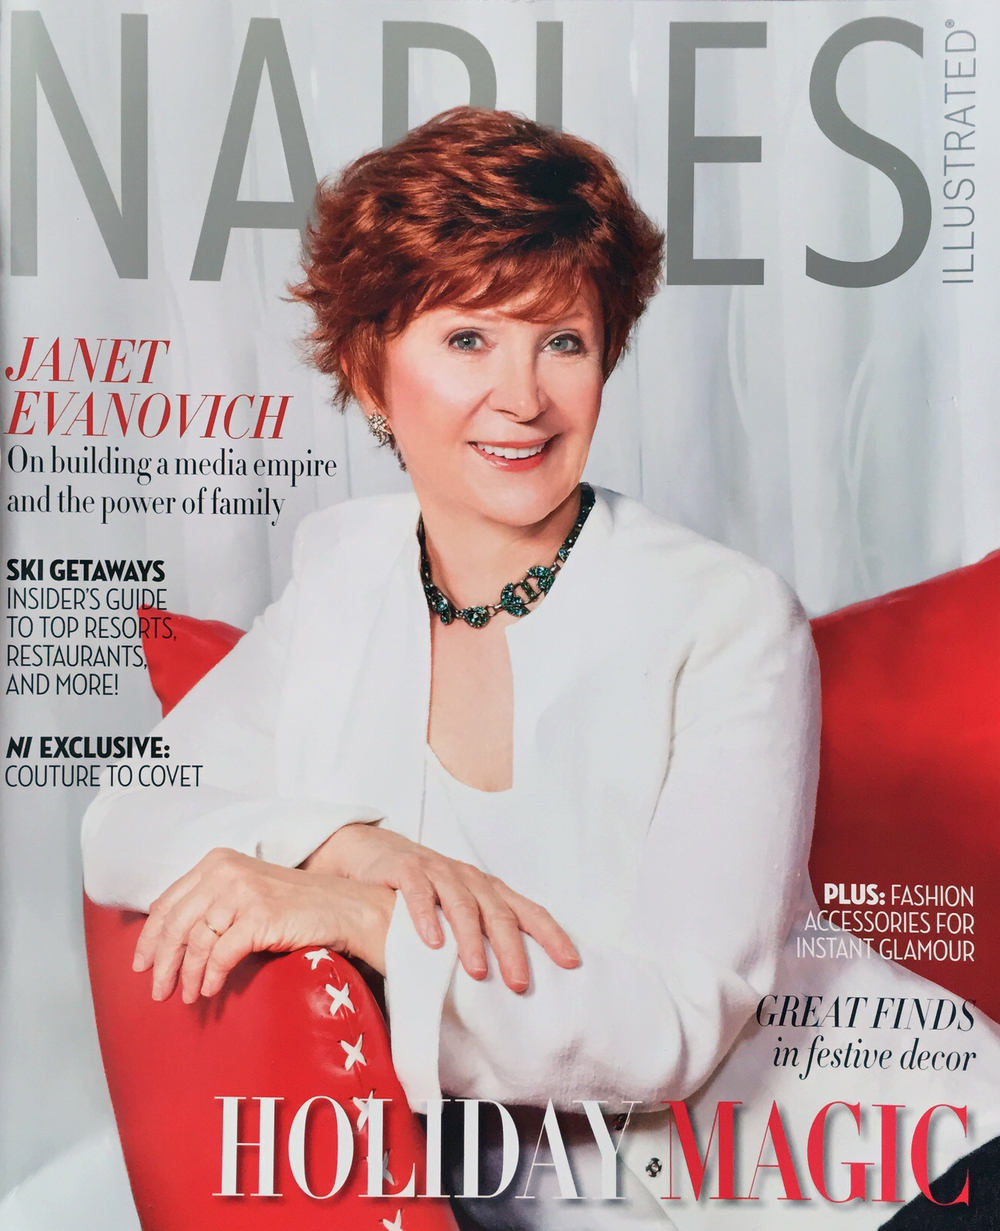 NAPLES_ILLUSTRATED_DECEMBER_ISSUE_2014_JANETT_EVANOVICH_COVER_PHOTOGRAPHED_BY_VANESSA_ROGERS